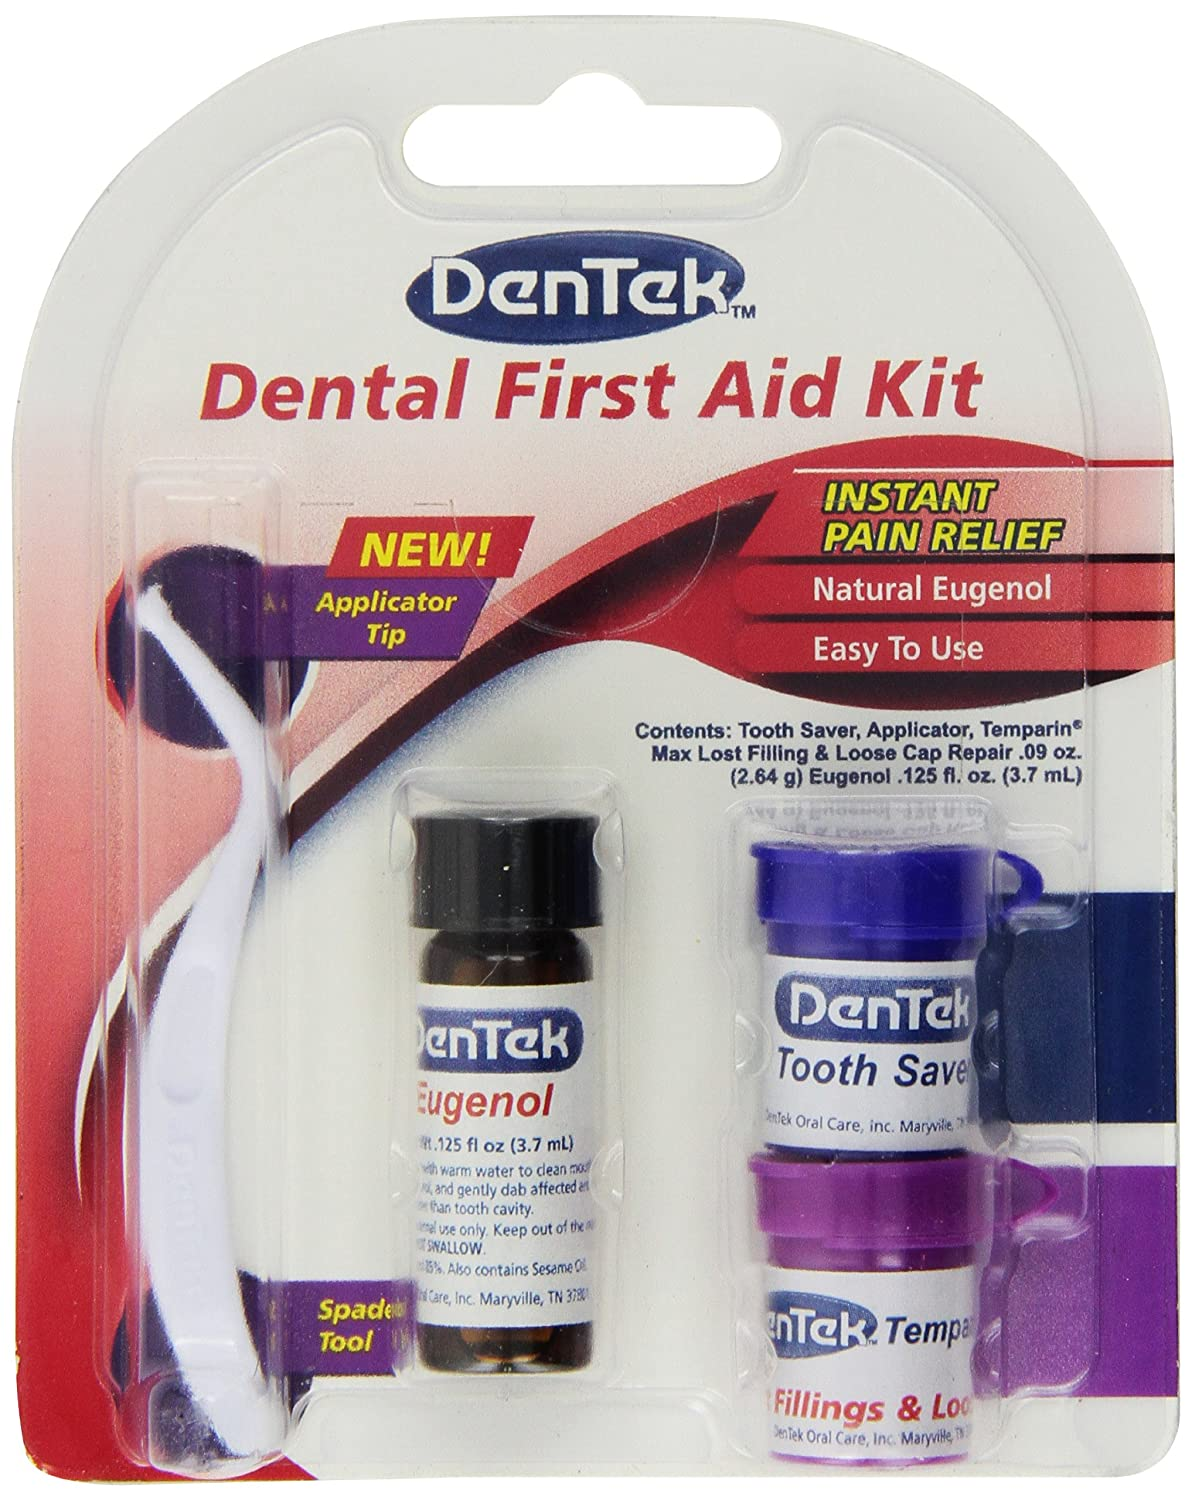 Amazon dentek dental first aid kit applicator teeth saver amazon dentek dental first aid kit applicator teeth saver tooth ache relief first aid kit beauty solutioingenieria Images